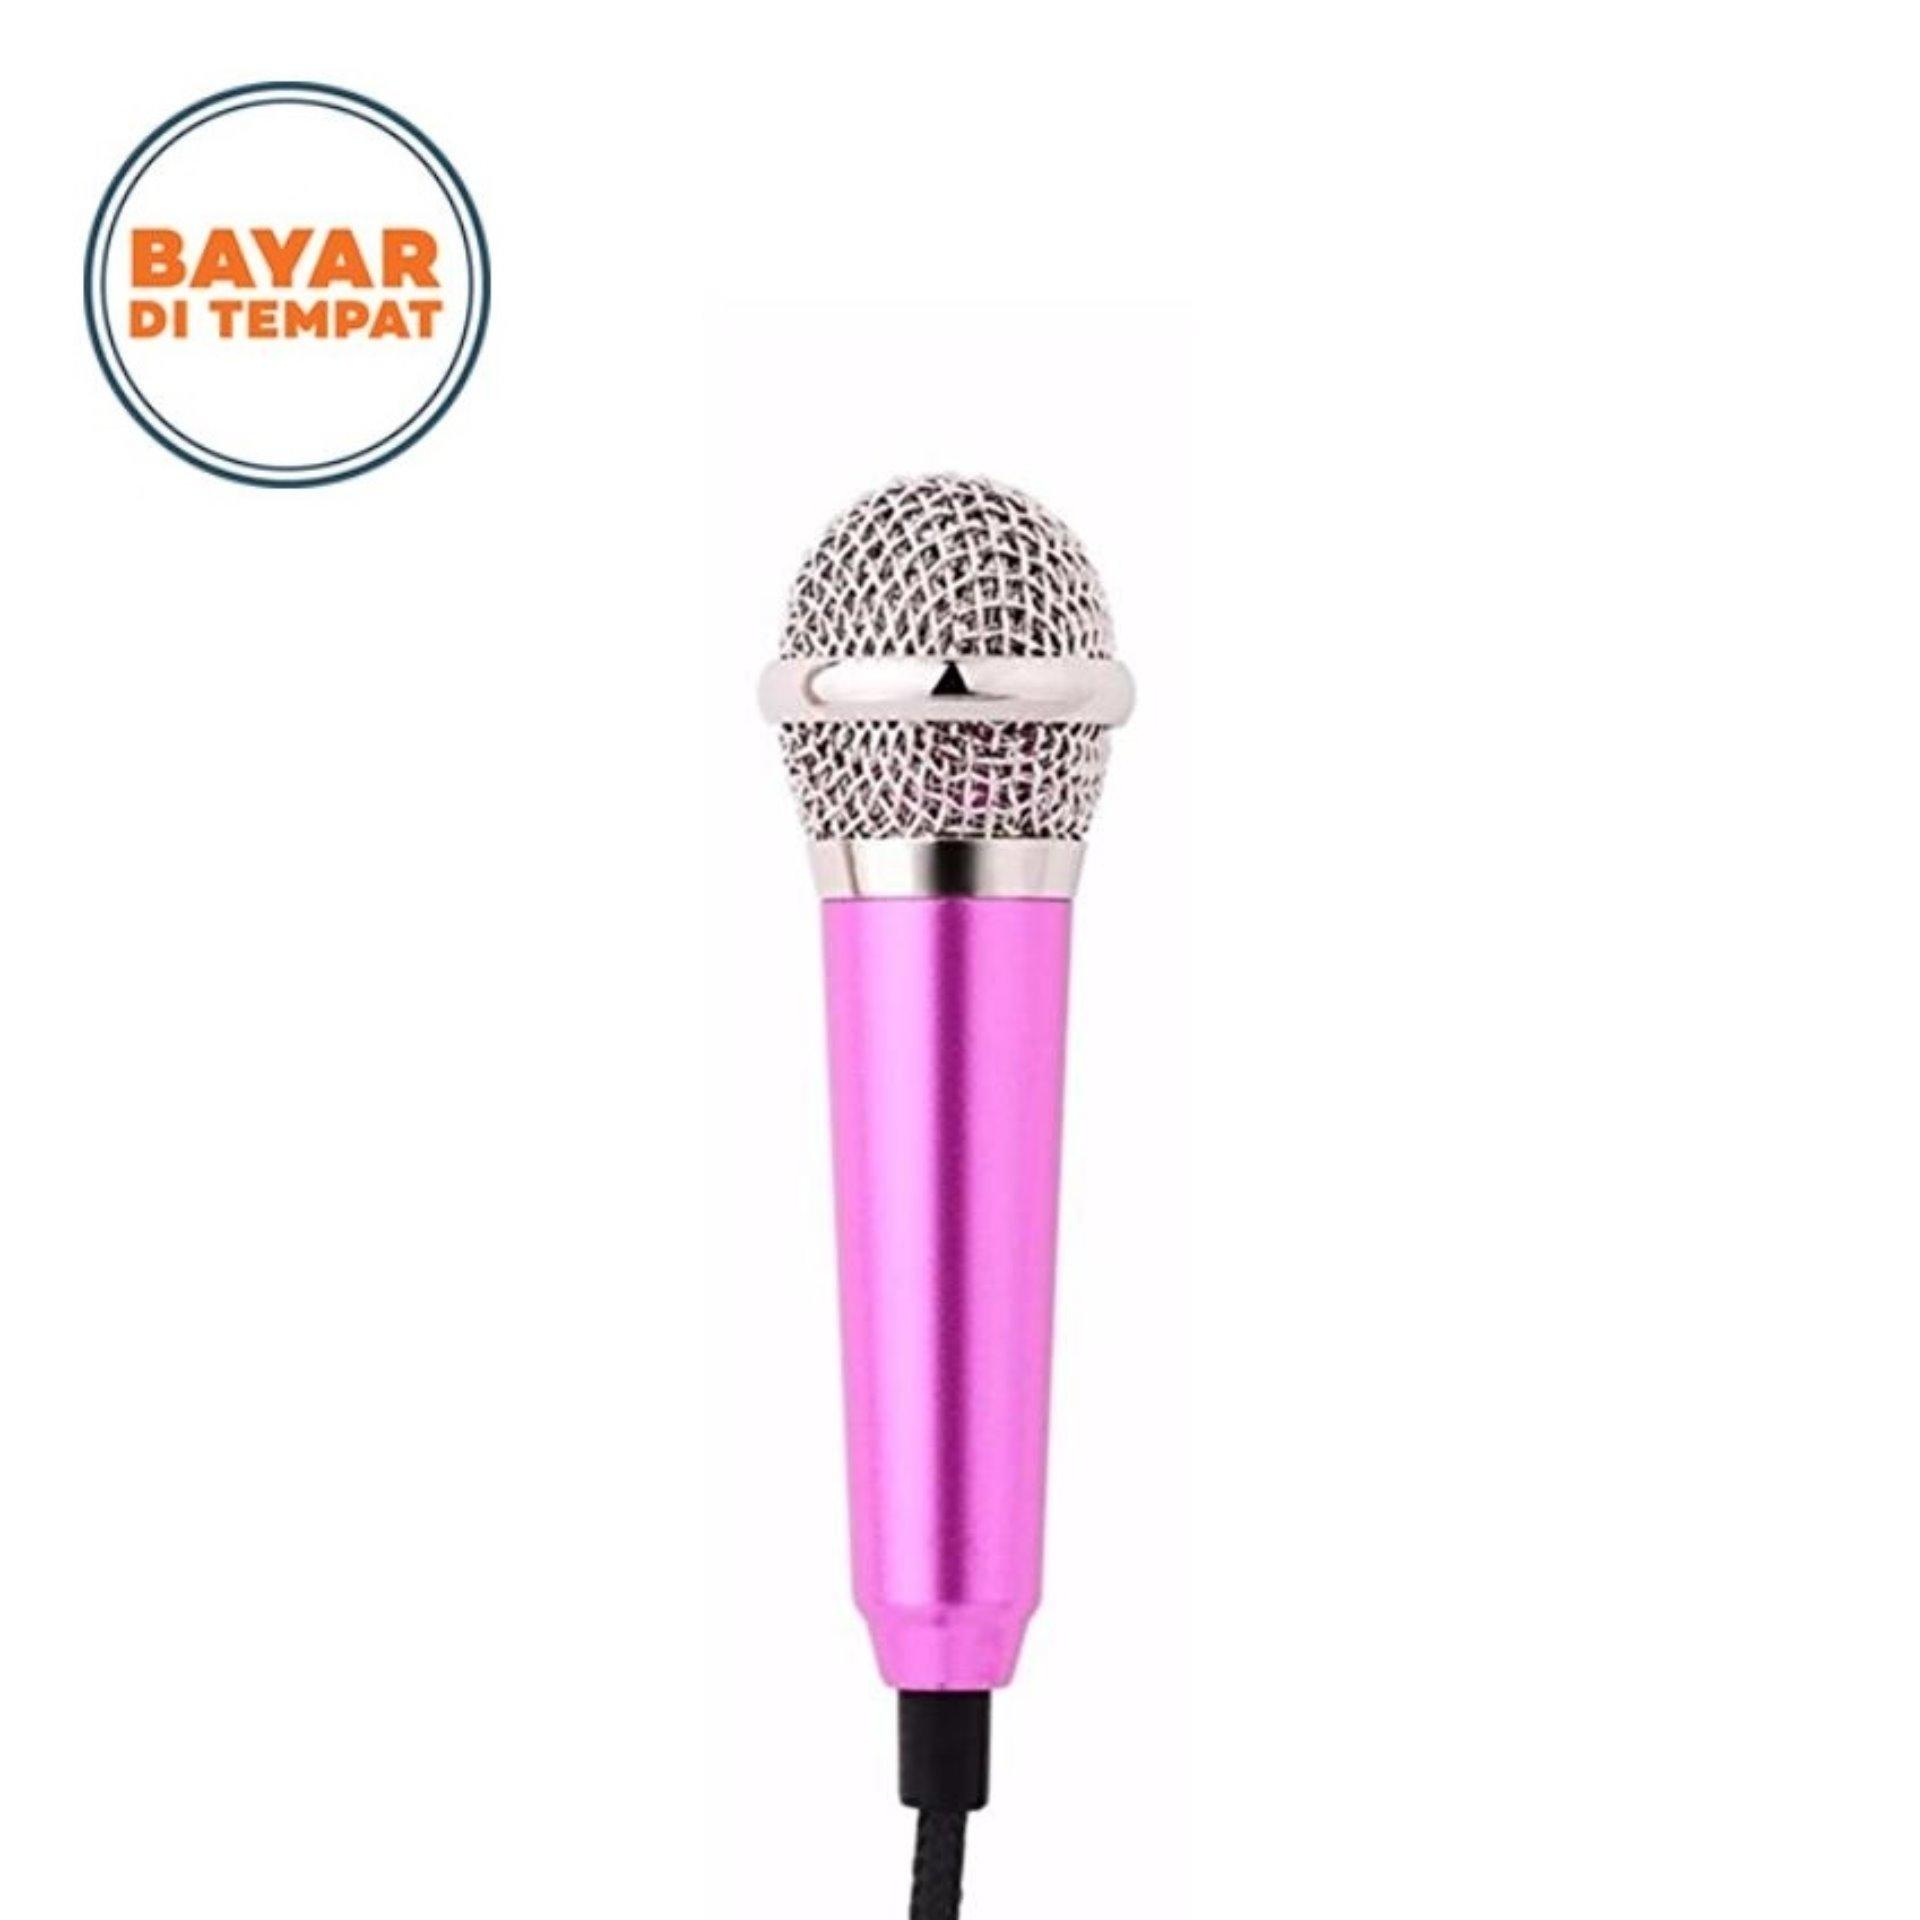 Mini Sing Karaoke Microphone for Android / IOS / PC - Pink .